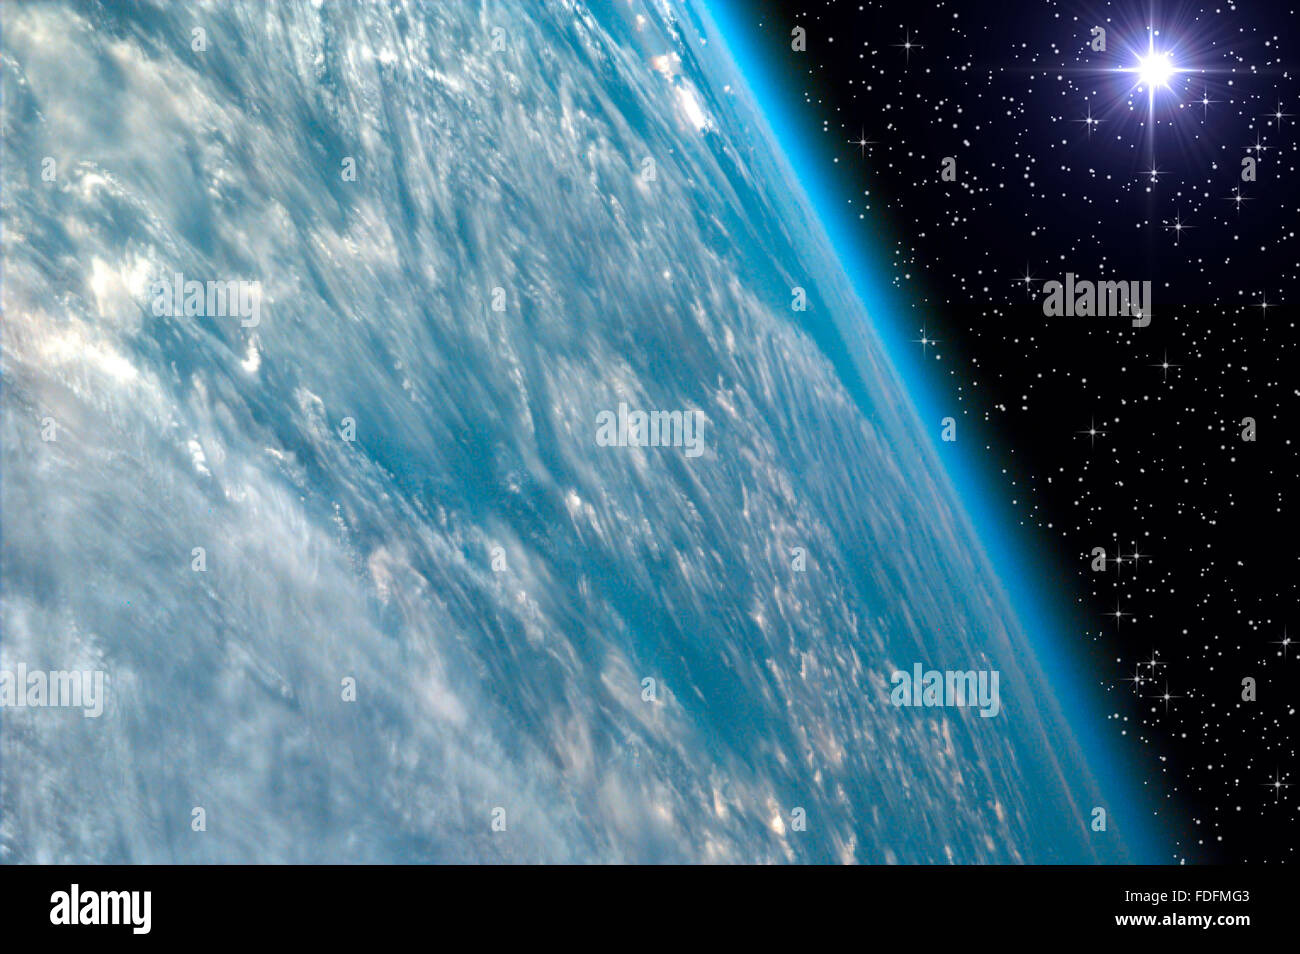 evening star and the earth - Stock Image